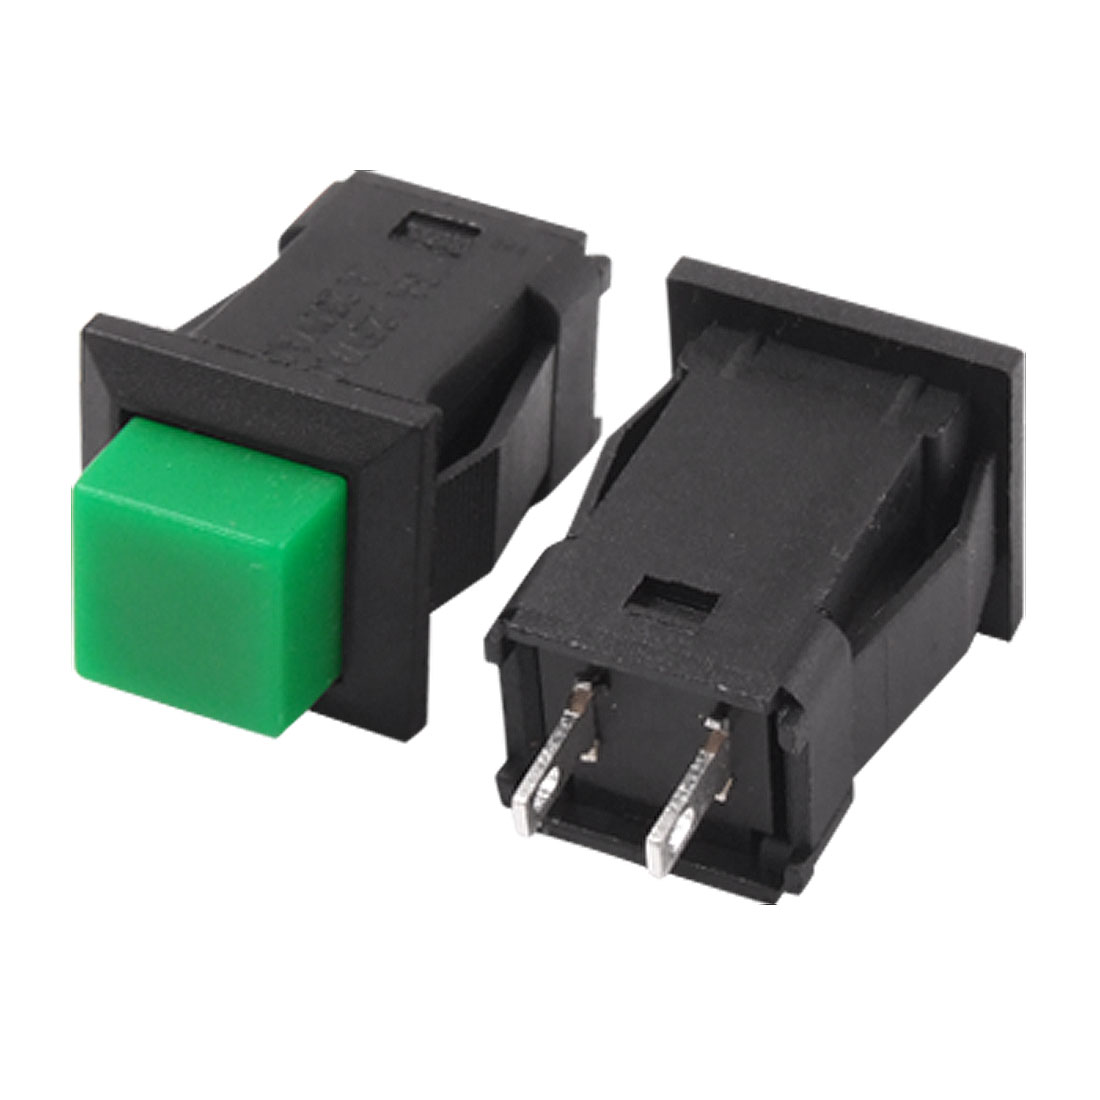 5pcs Ac 125v 3a 250v 1a No N O Spst Latching Green Push Button Cool Electronics Circuits A Switch On Off